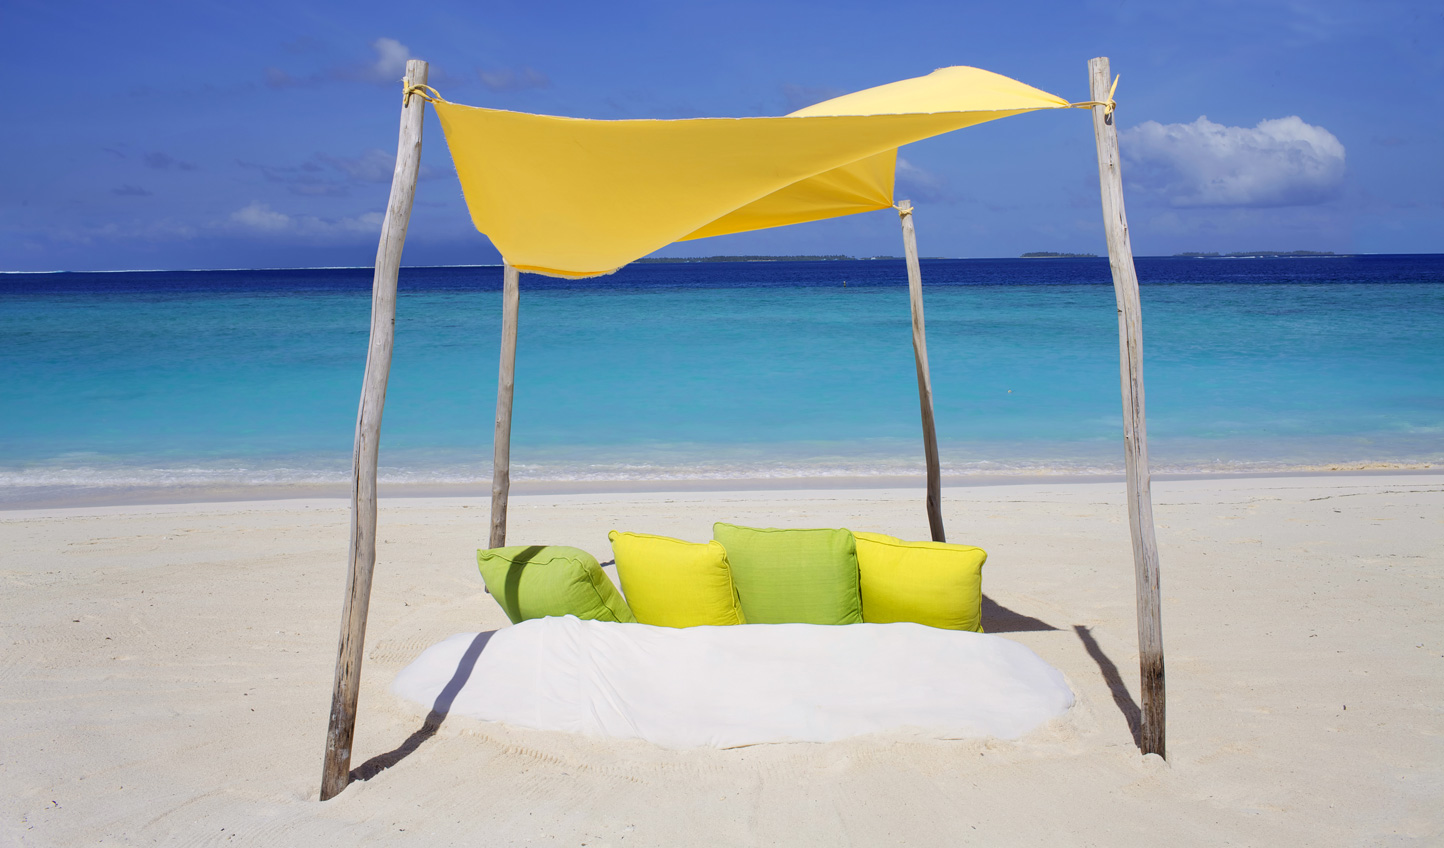 While away the hours on soft sands gazing at azure waters